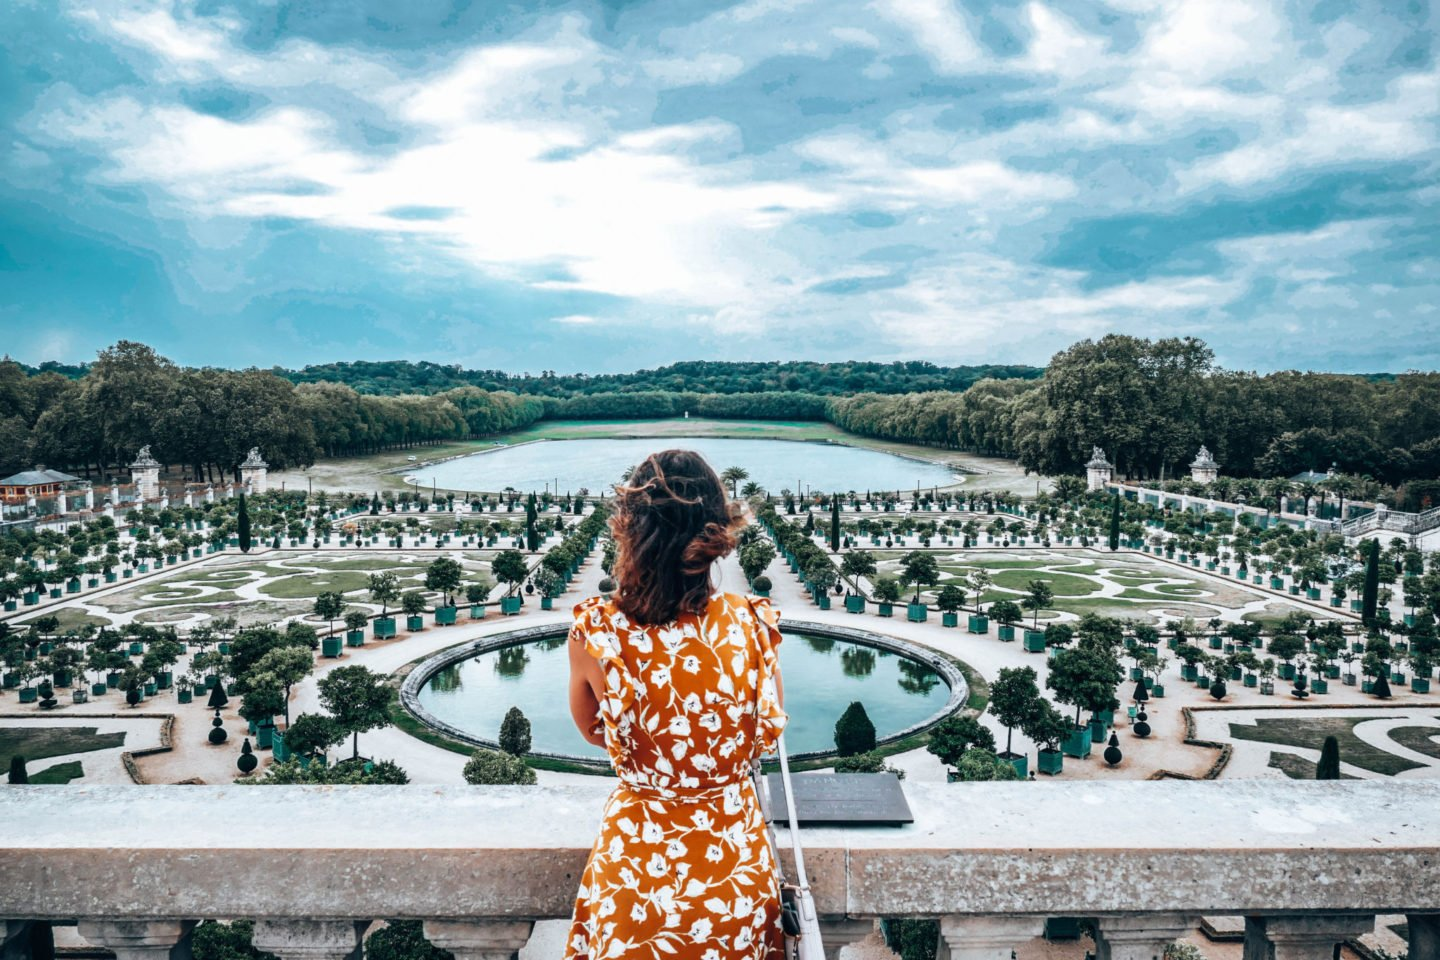 Gardens of Versailles - Paris itinerary 2 days